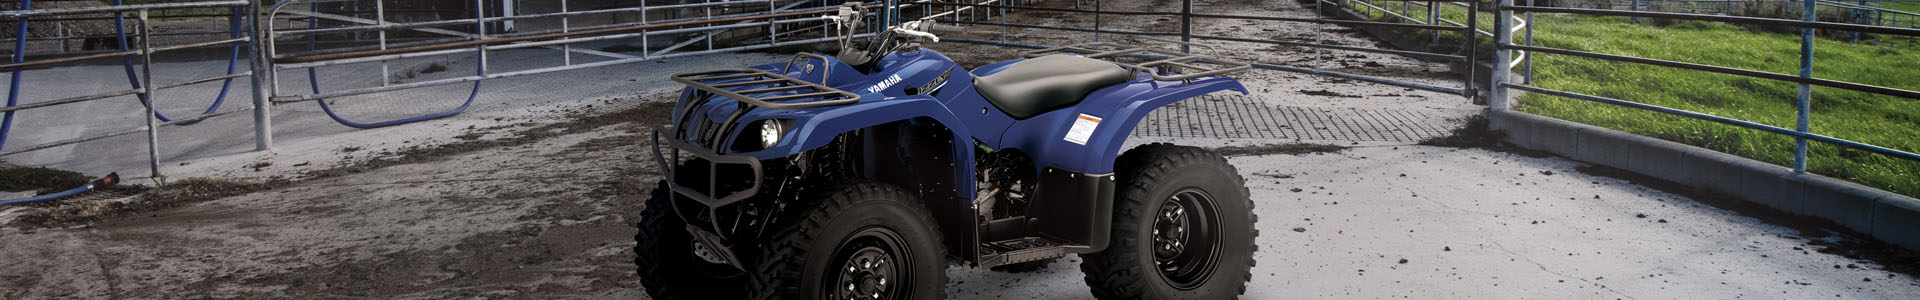 https://www.yamahas.nz/i/Images/Models/Headers/ATV/Grizzly3504wdBanner_1.jpg